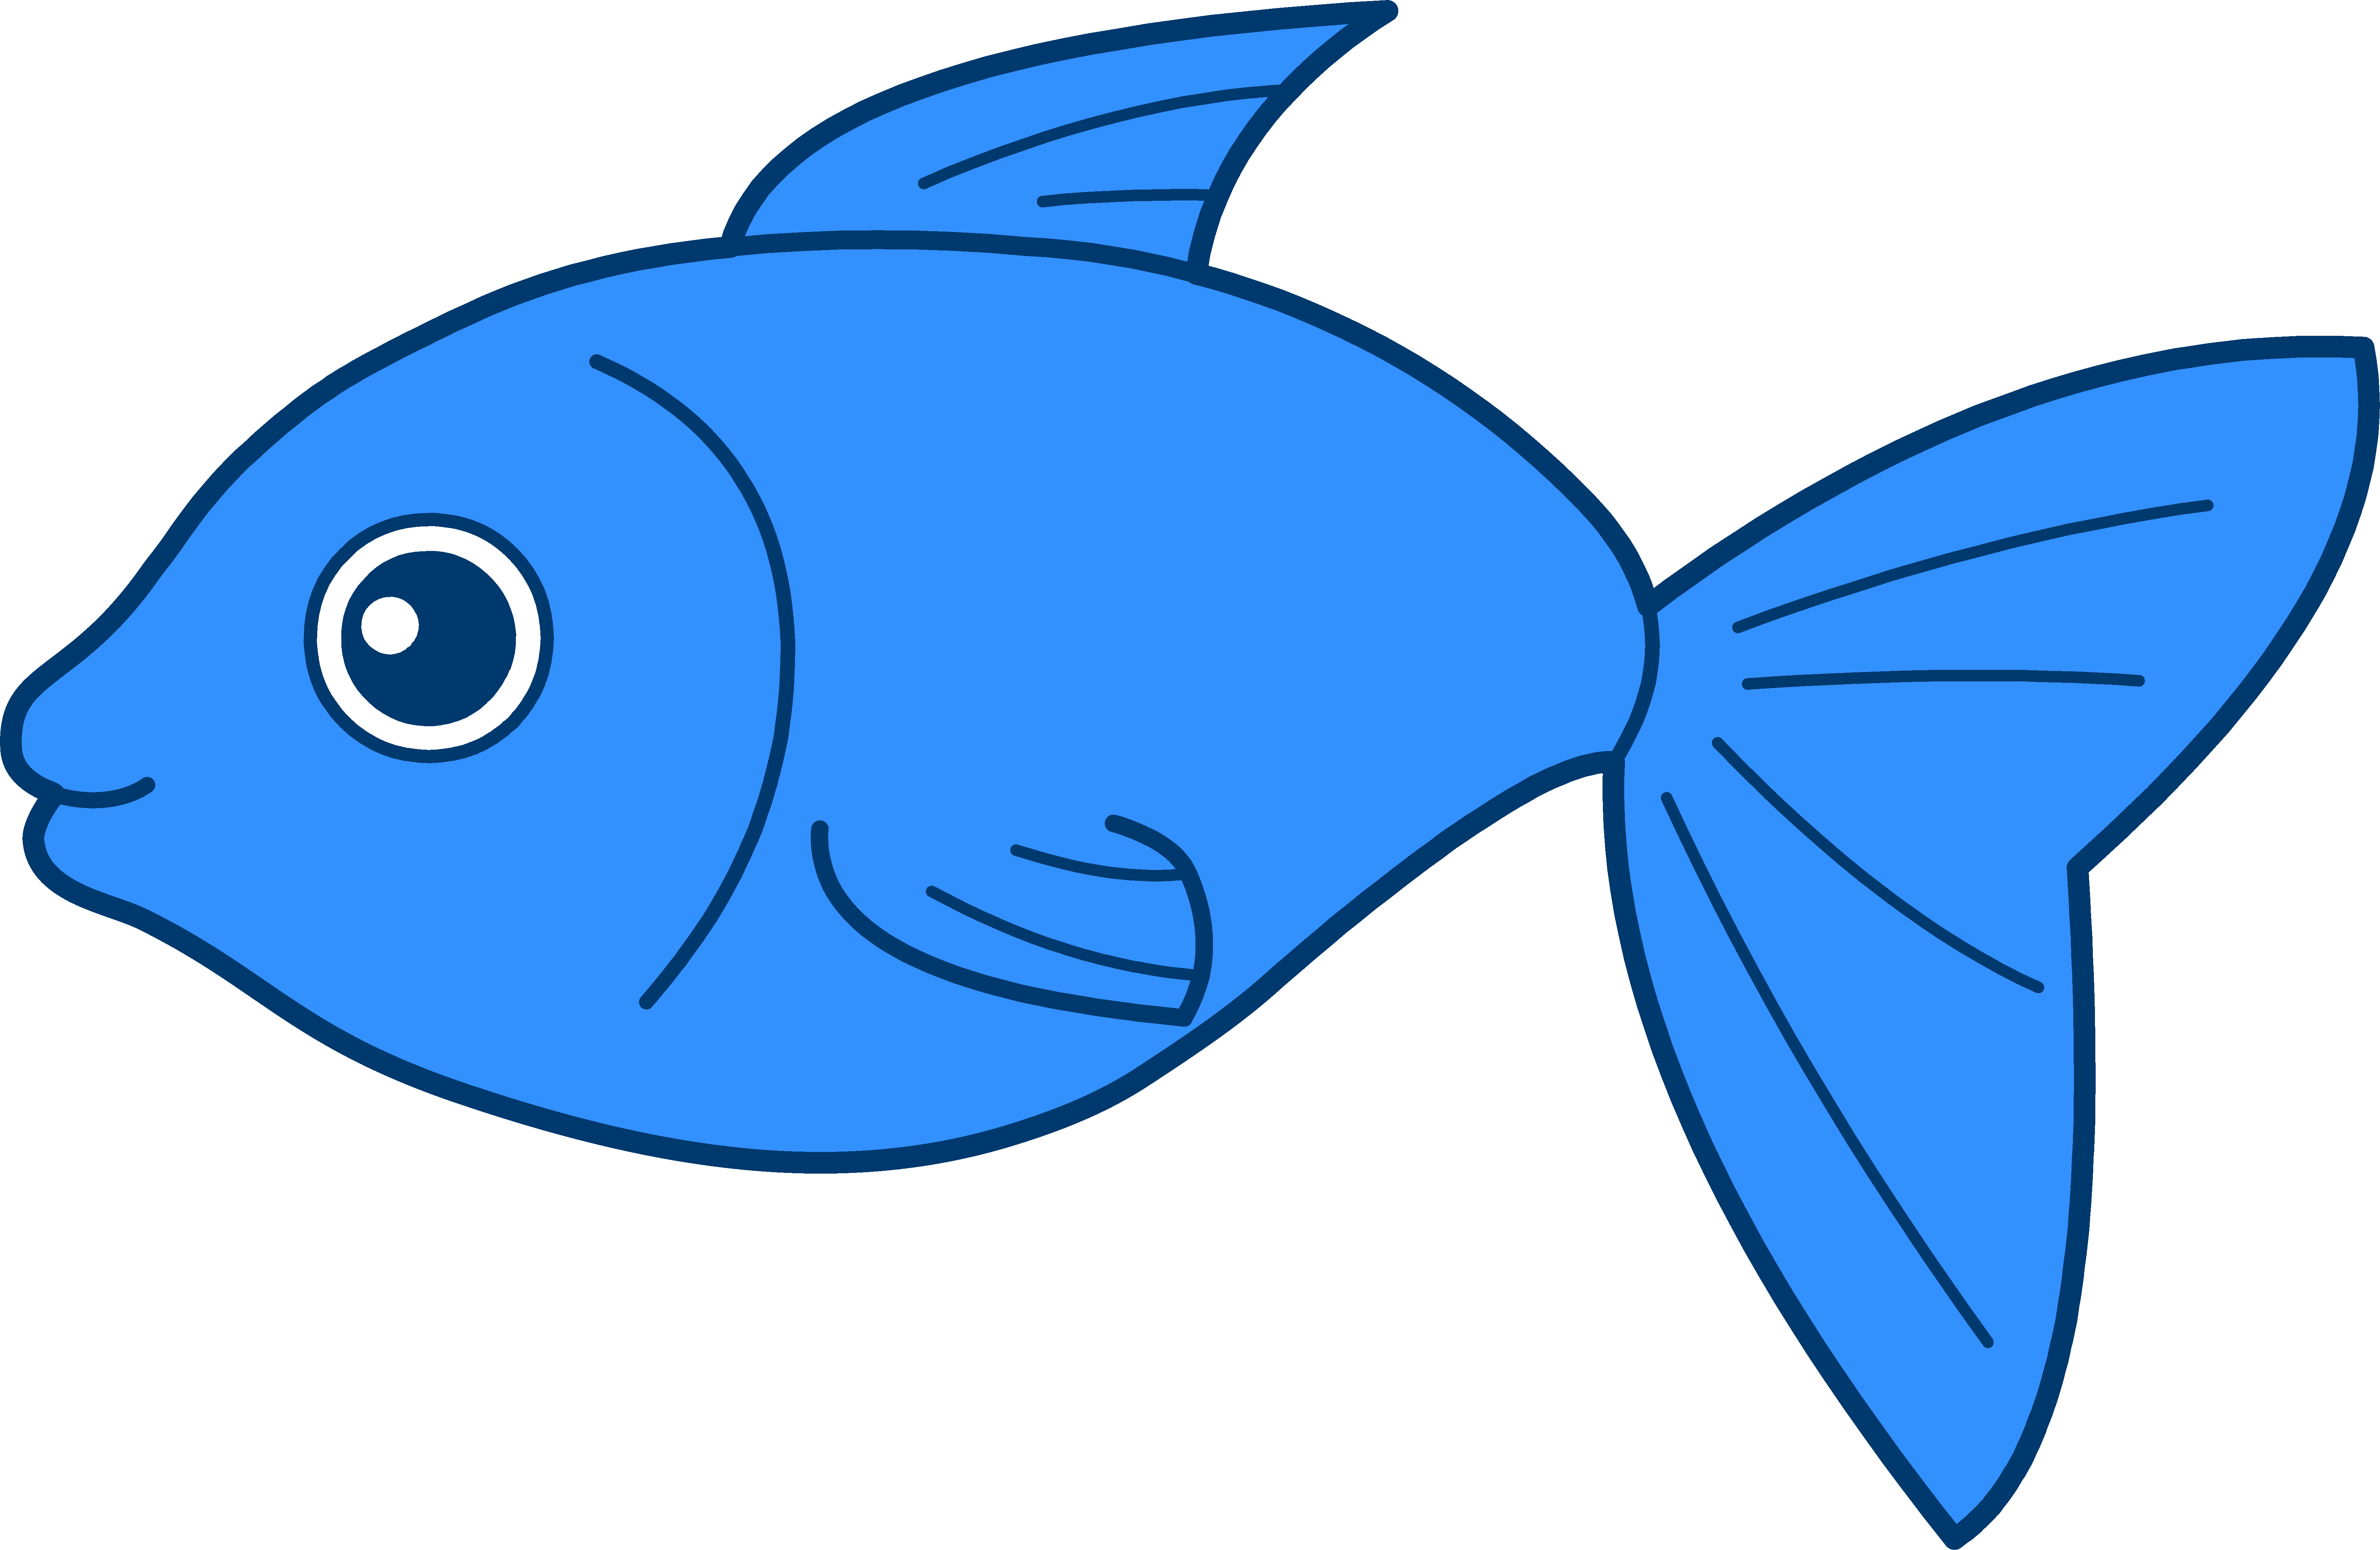 Blue fish red fish clipart clip download Fish | Gateway to Science - North Dakota's Hands-on Science Center clip download